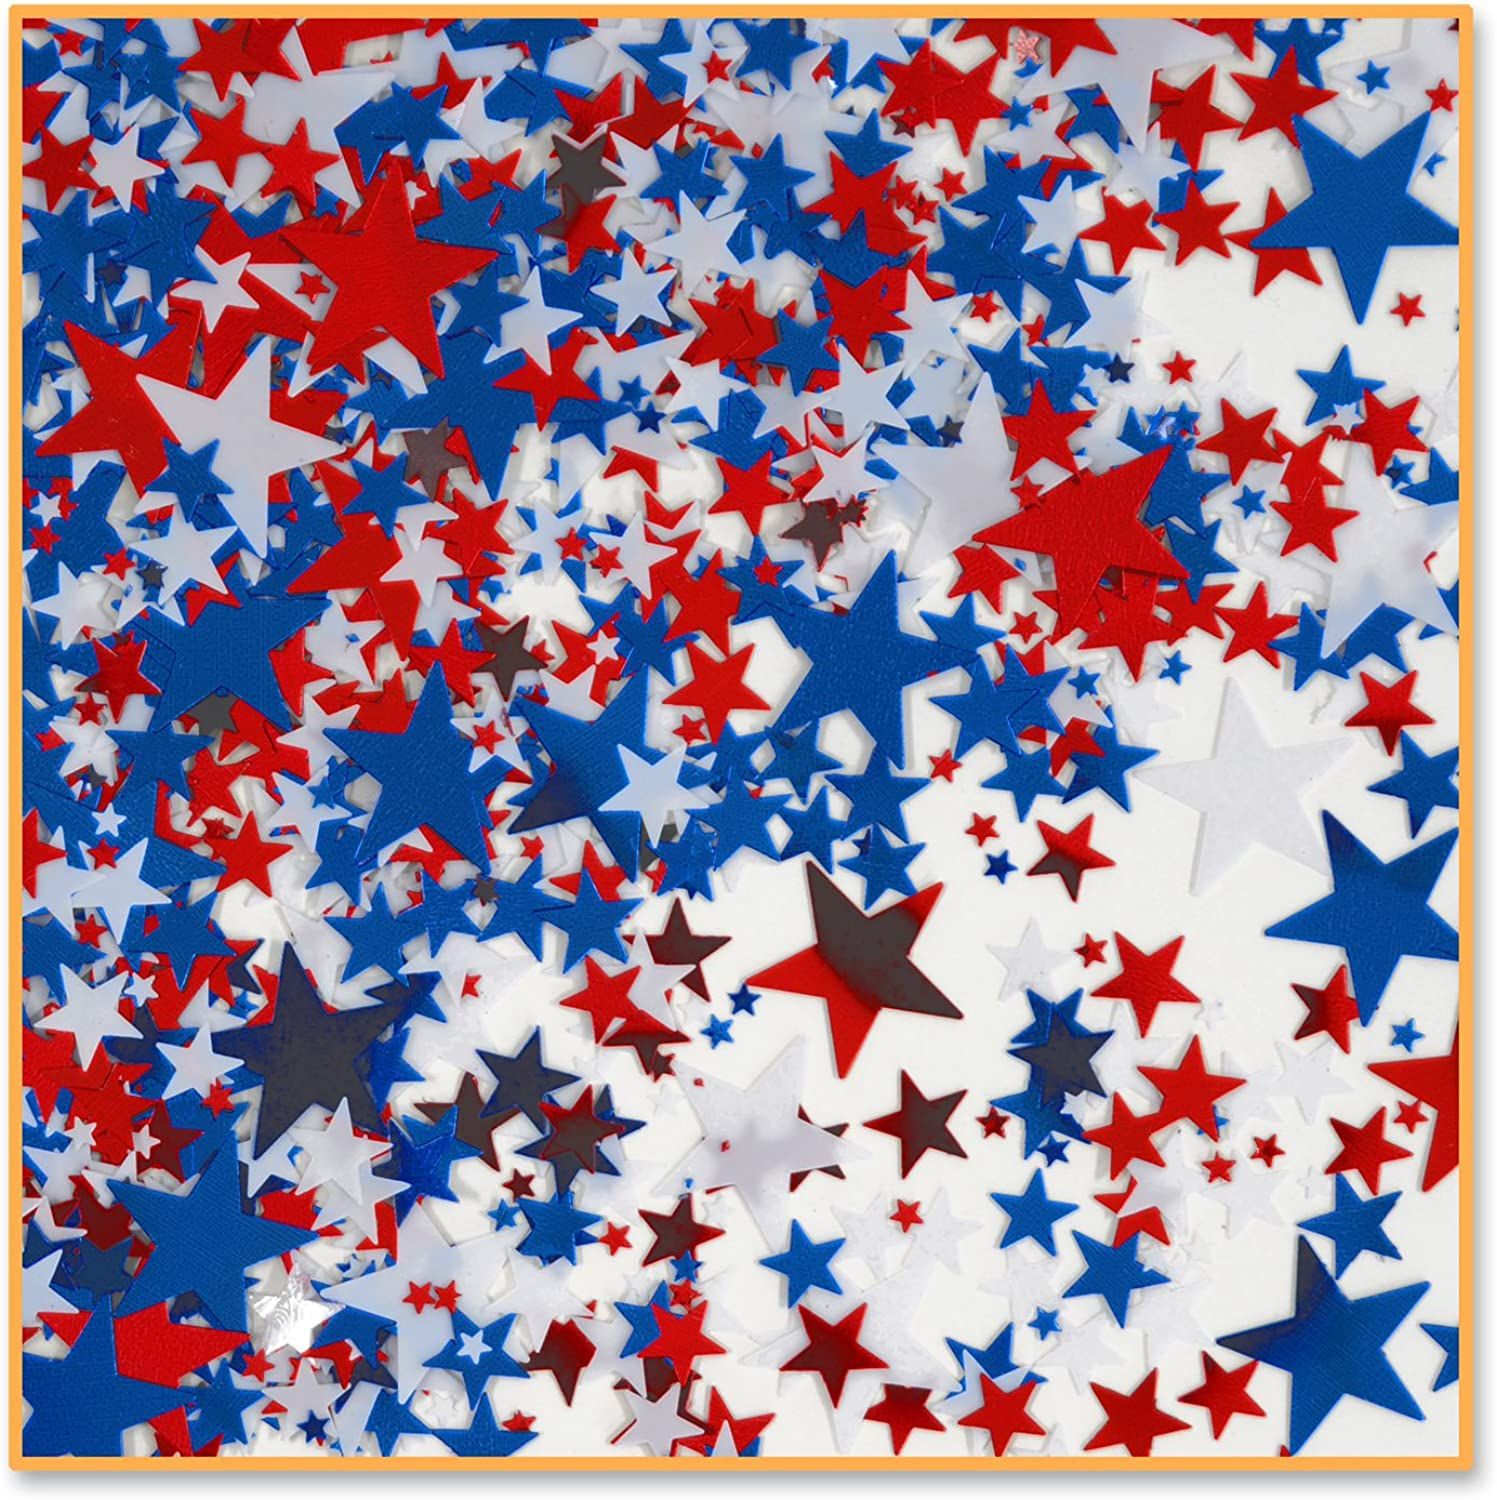 Wimpelkette Sterne Konfetti Red, White, Royal bluee